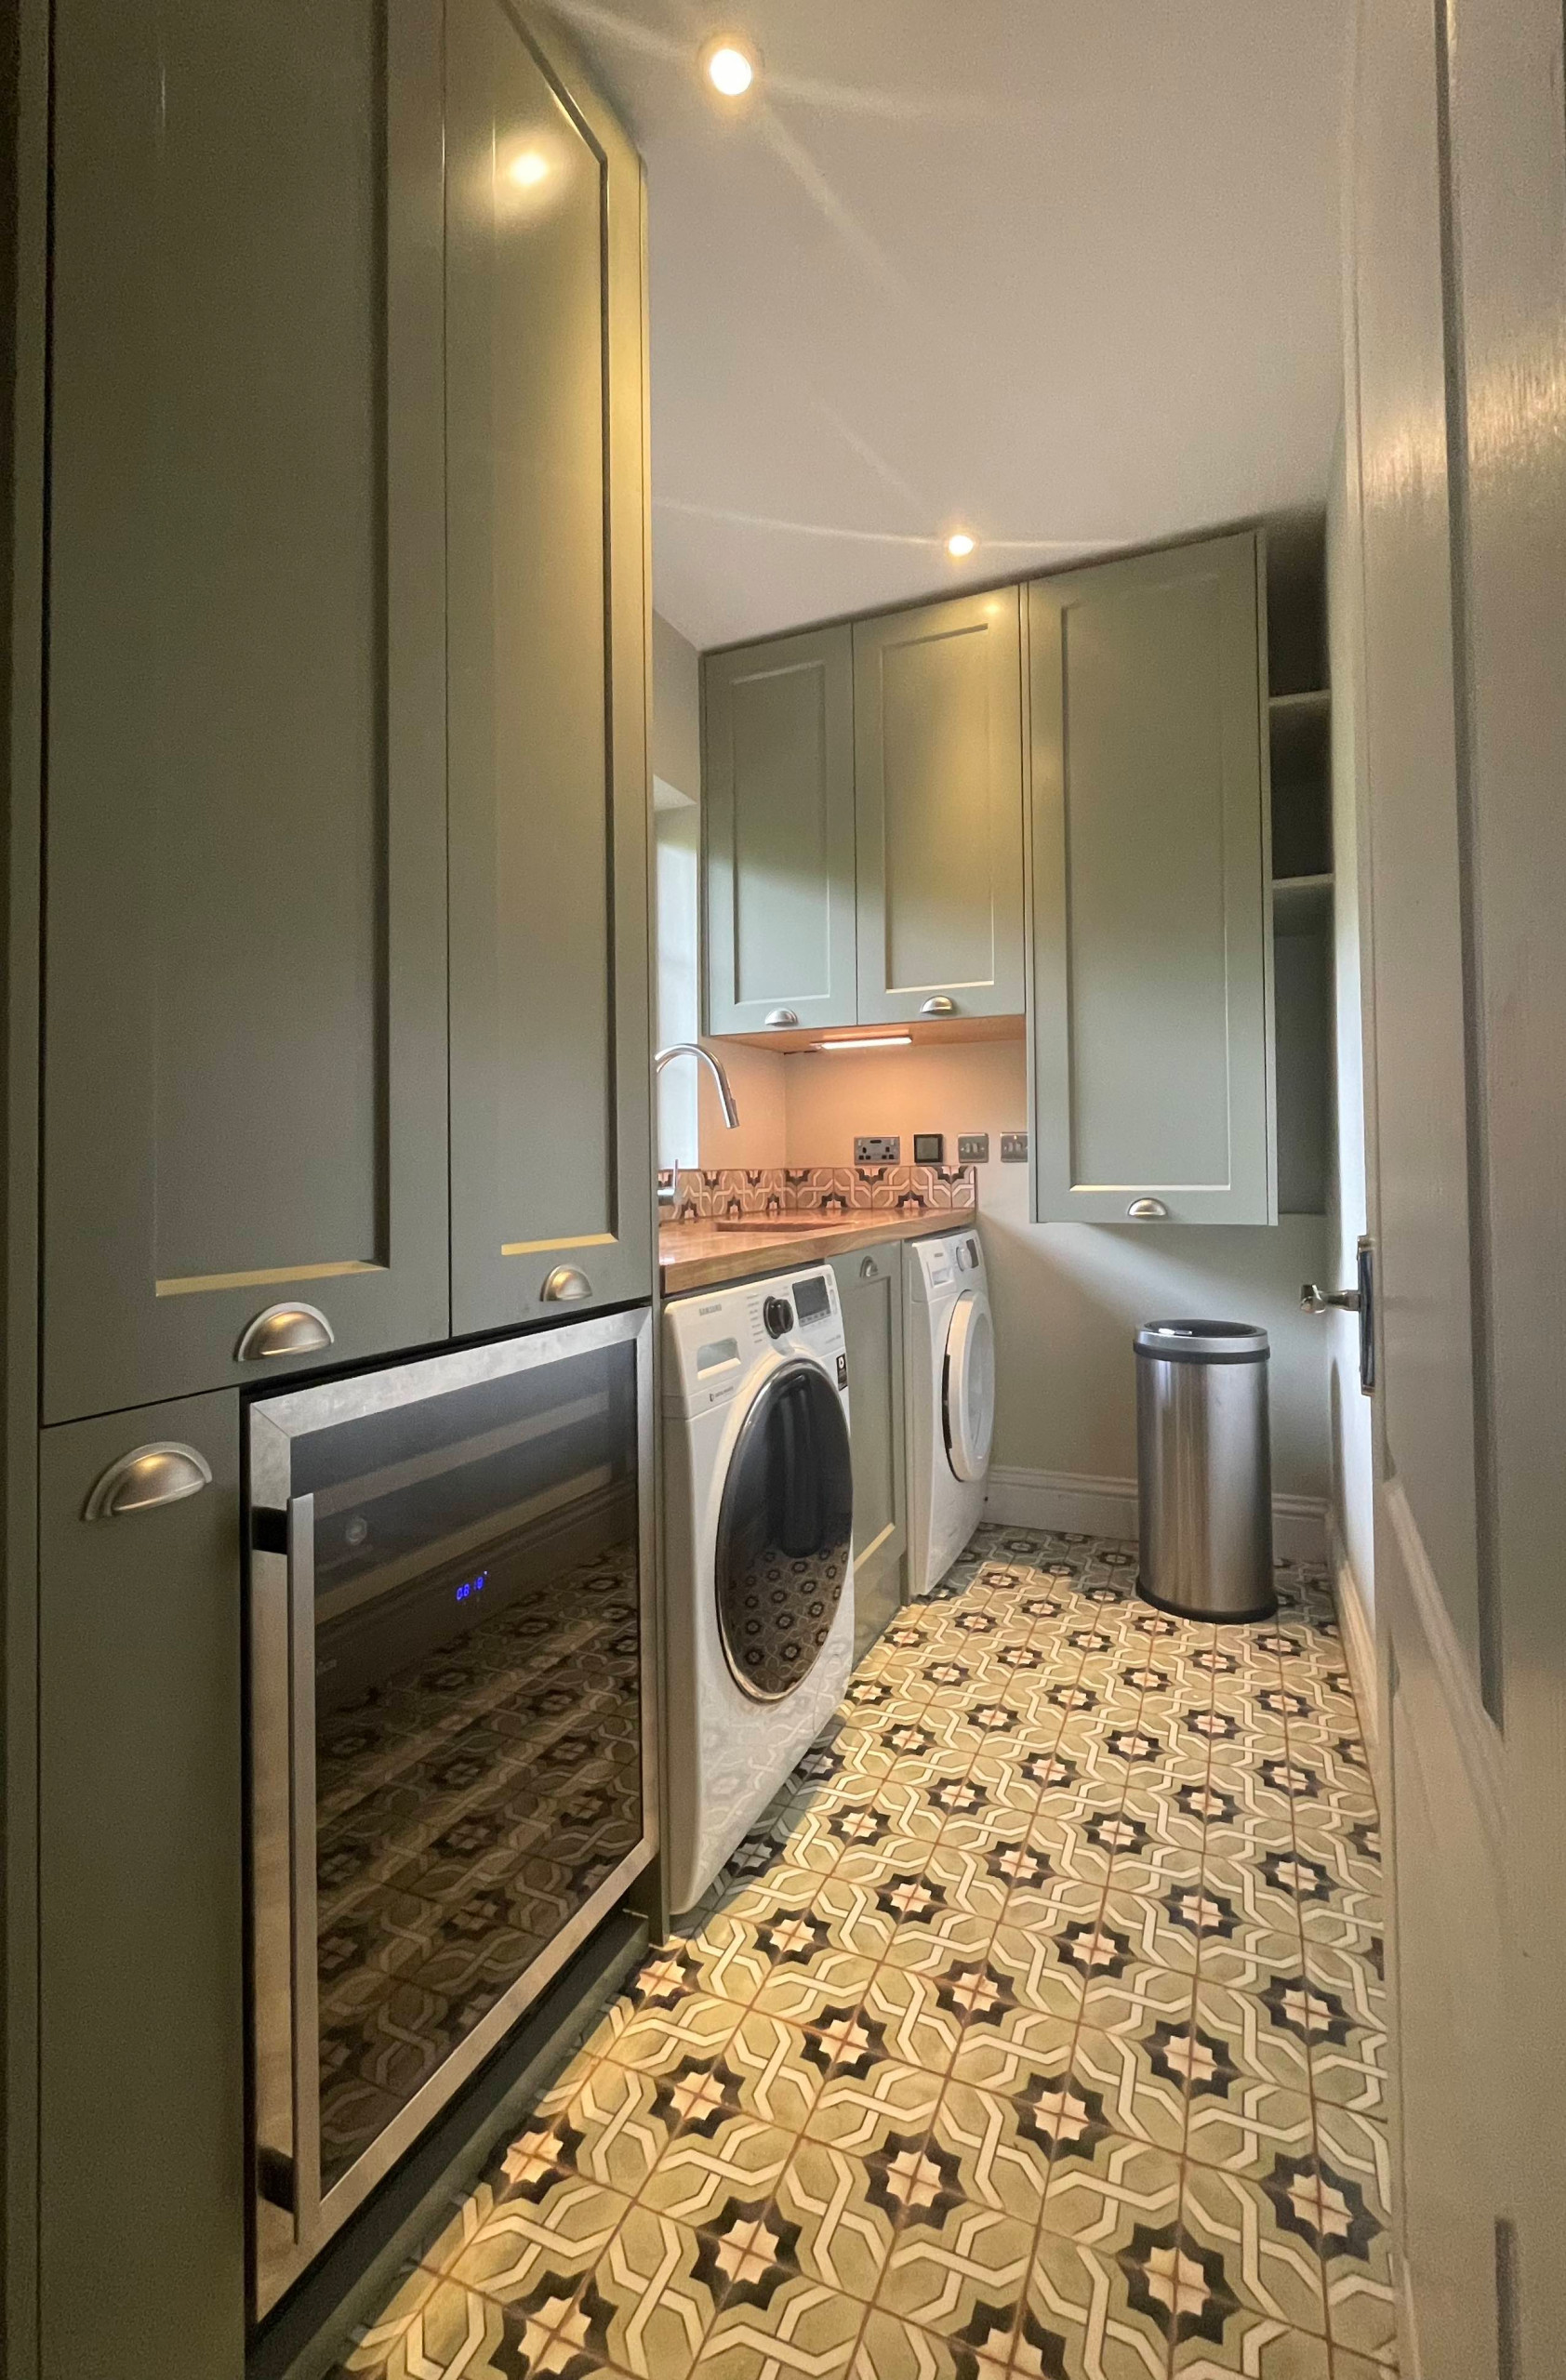 Bespoke cabinets for utility room